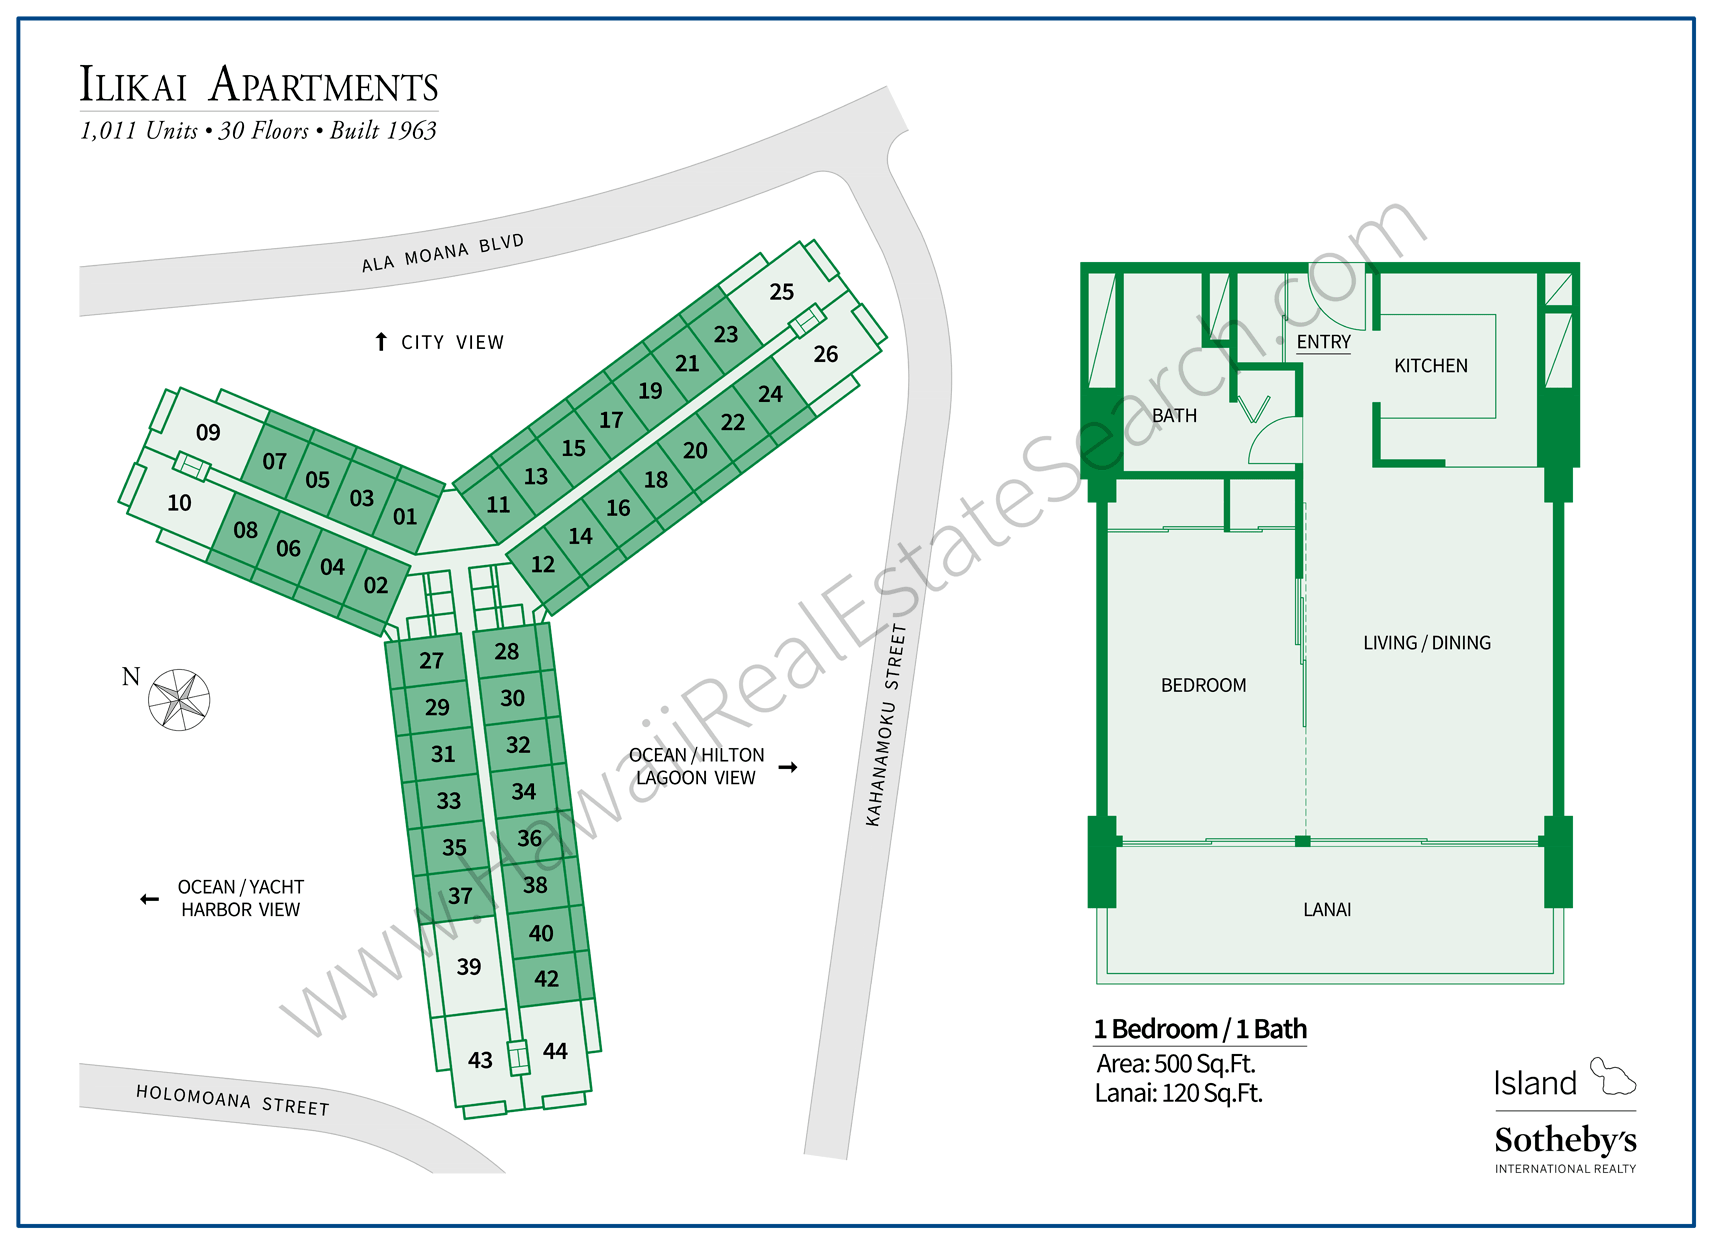 Ilikai Apt Building Map